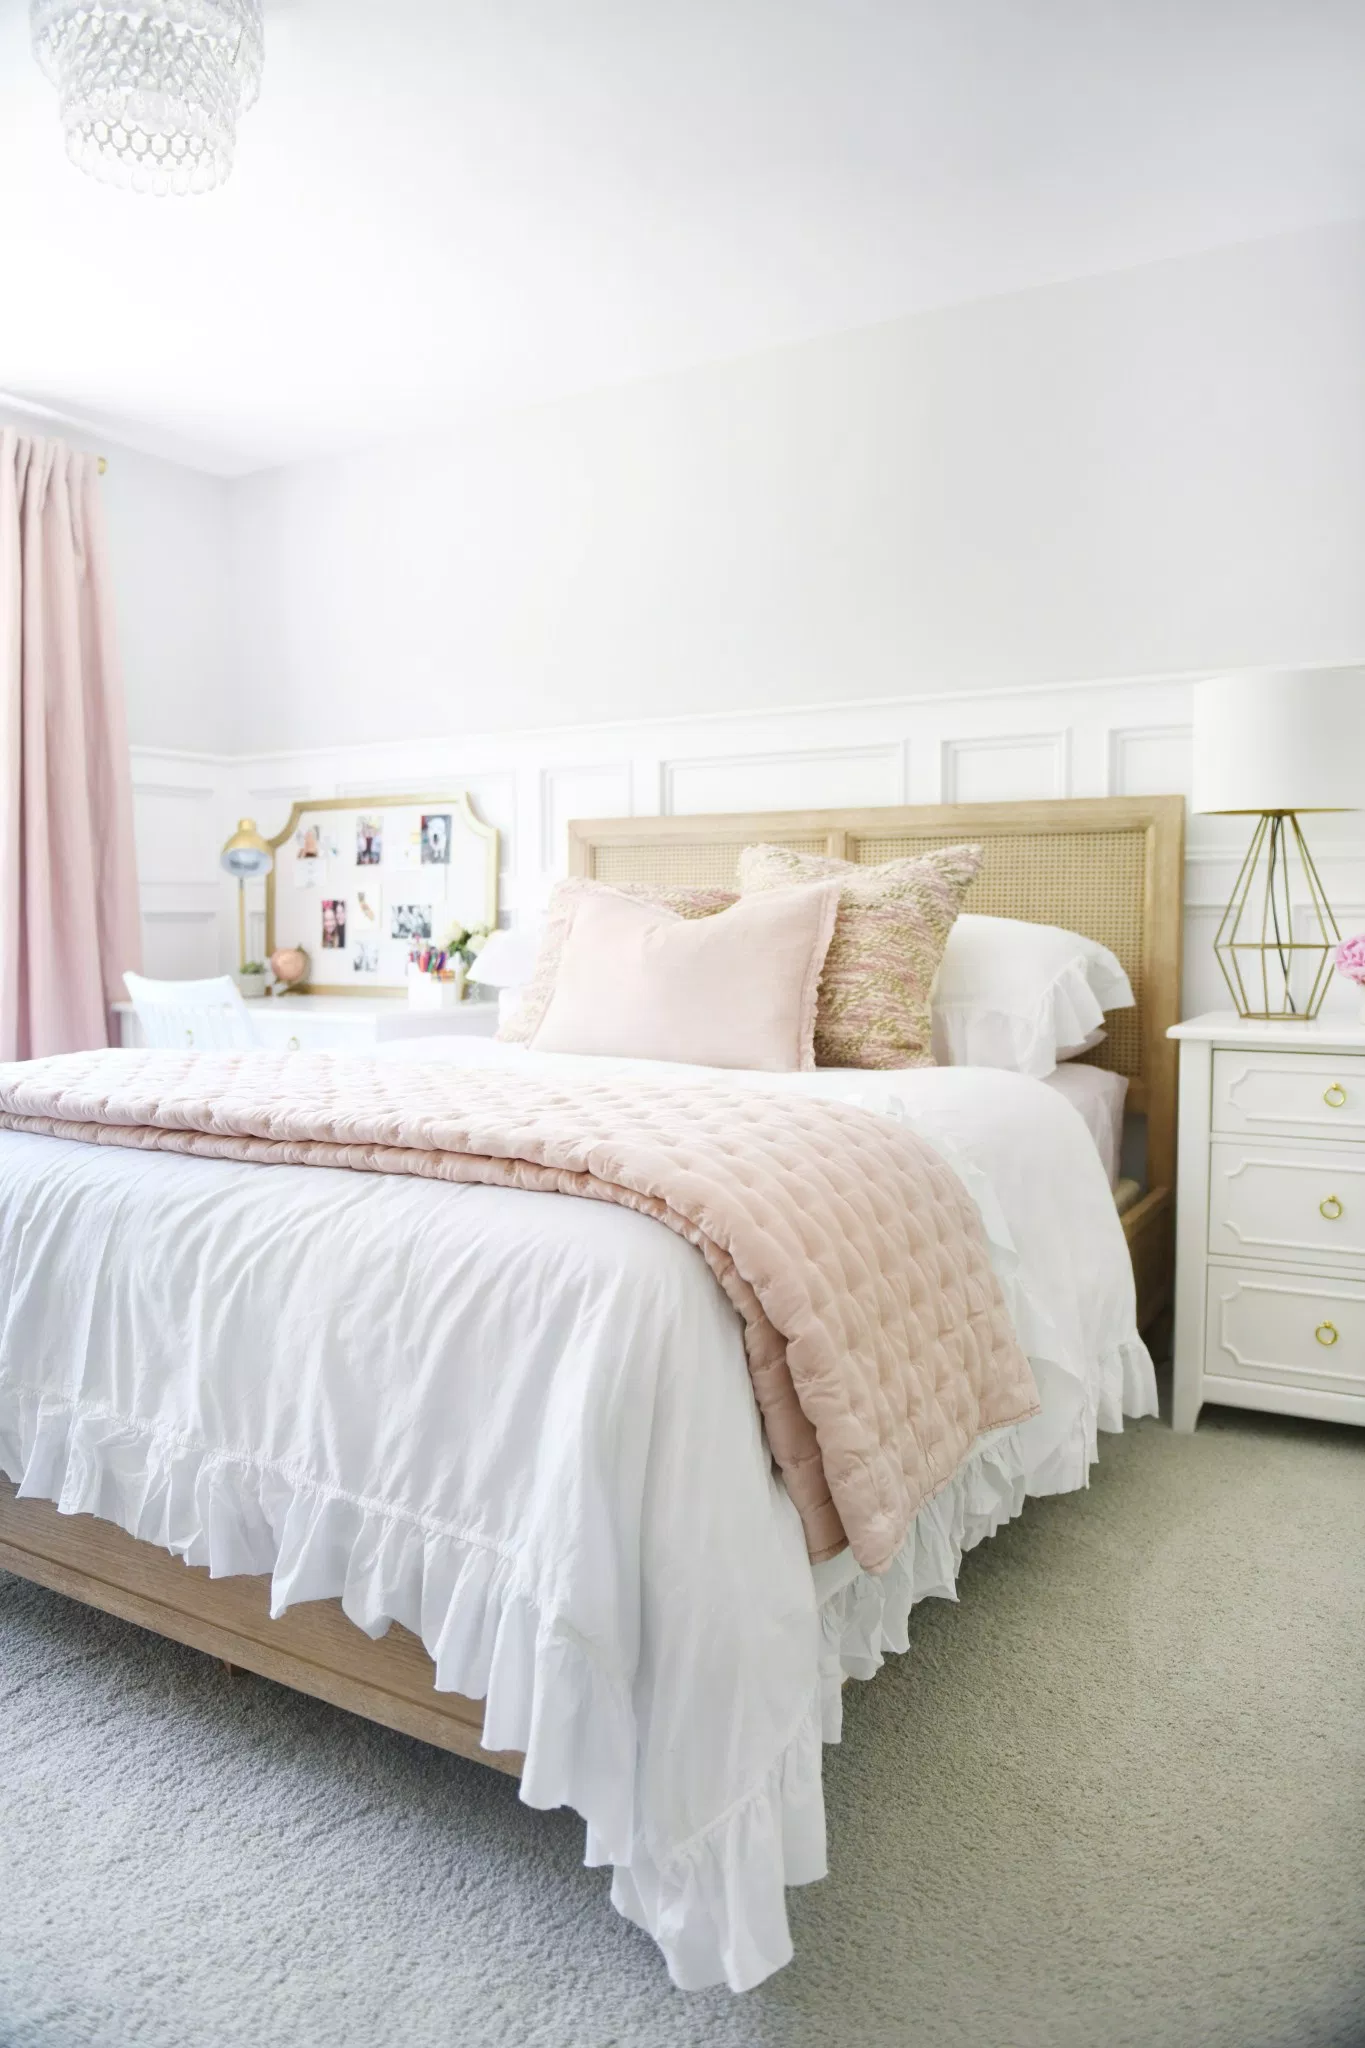 Cute Room Ideas for a Teenage Girl: Teen Bedroom Before and After images